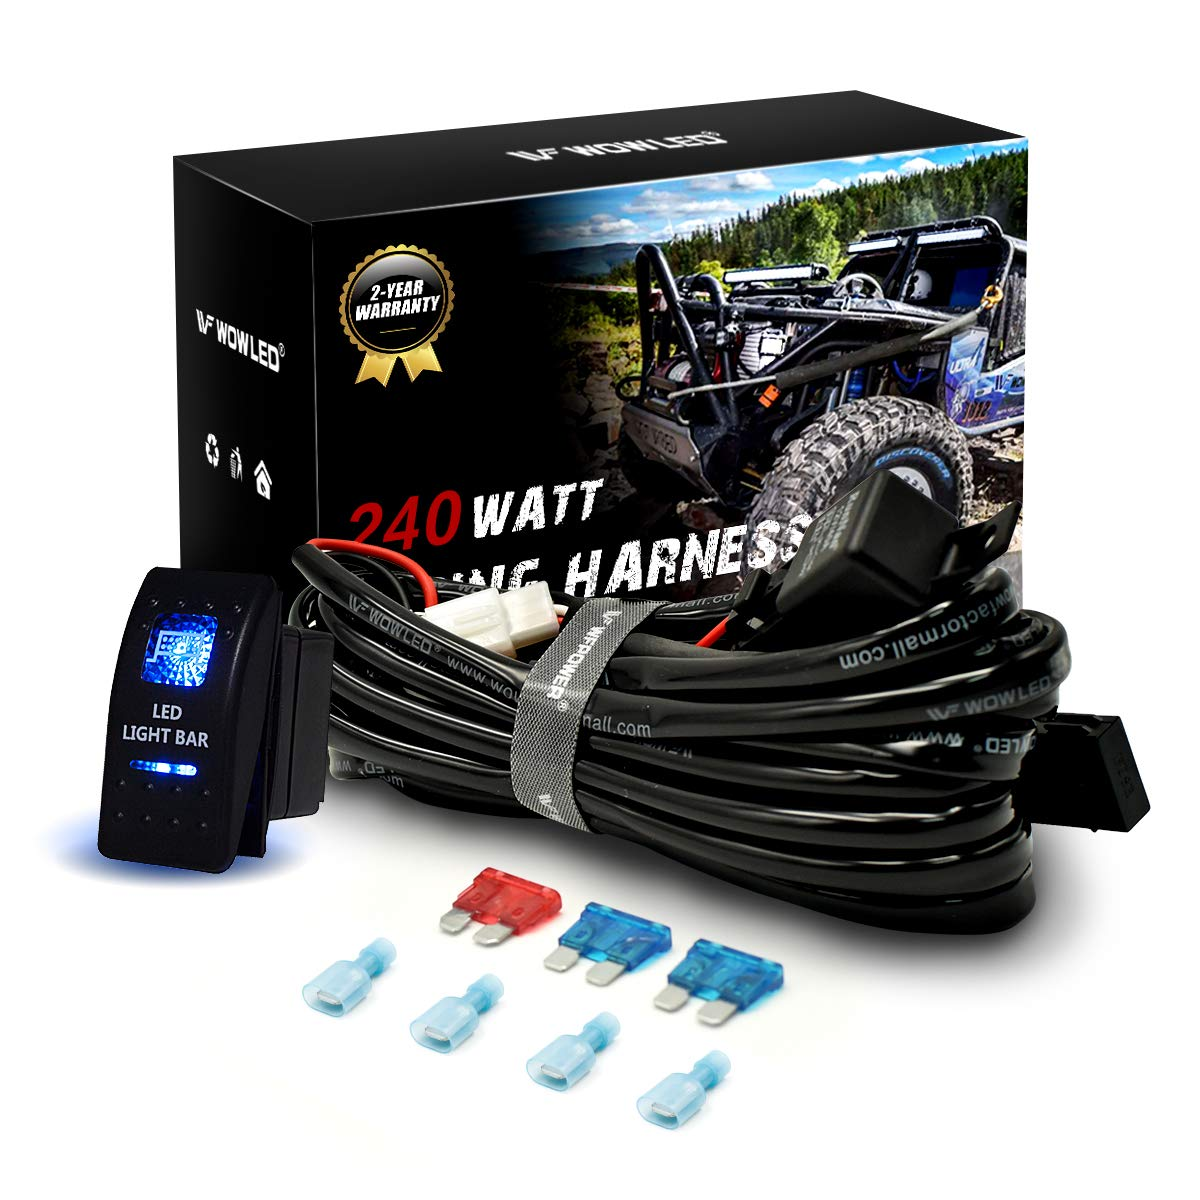 WOWLED High-end Wiring Harness Kit, LED Light Bar Wiring Harness Kit for Off Road Lights LED Light Bar with 12V 40A Relay On Off Switch(2 Lead)